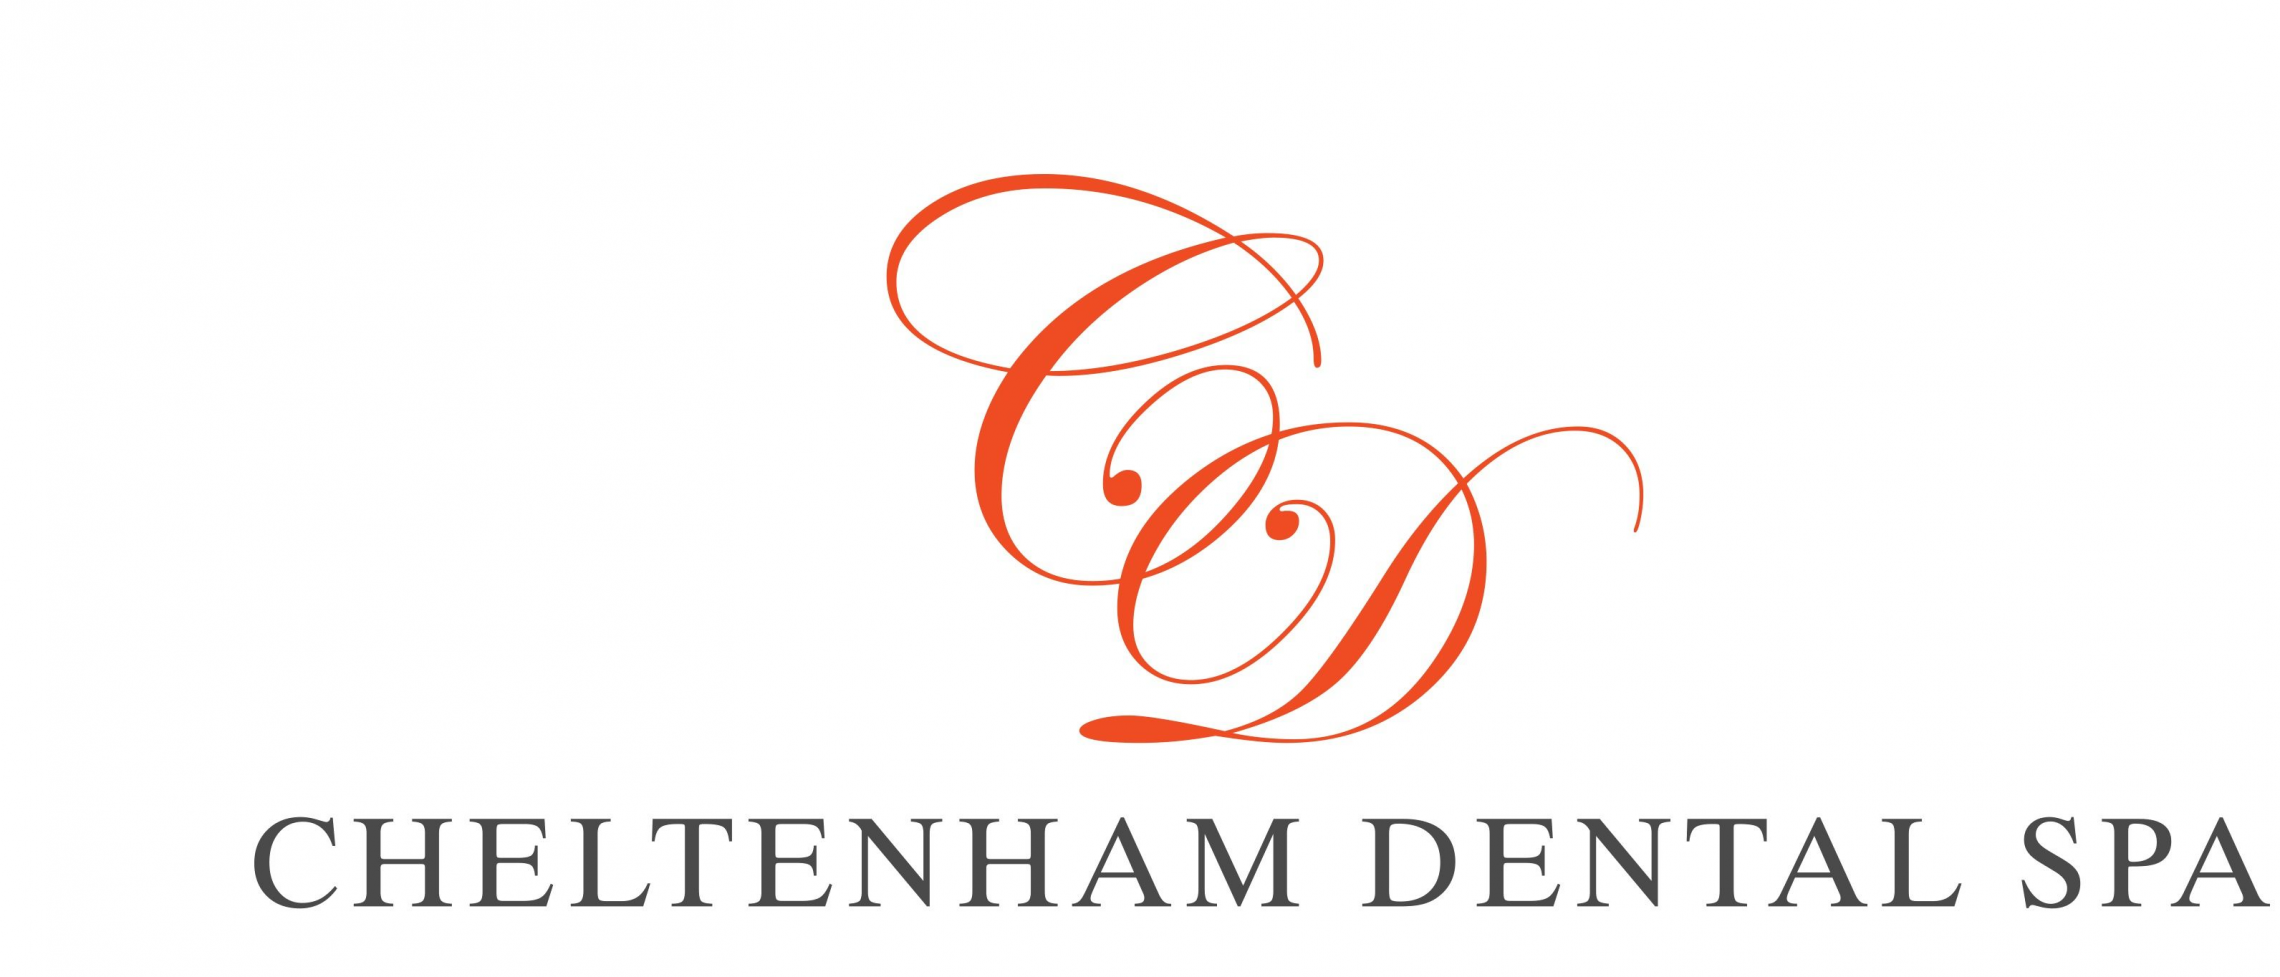 Cheltenham Dental Spa and Implant Clinic